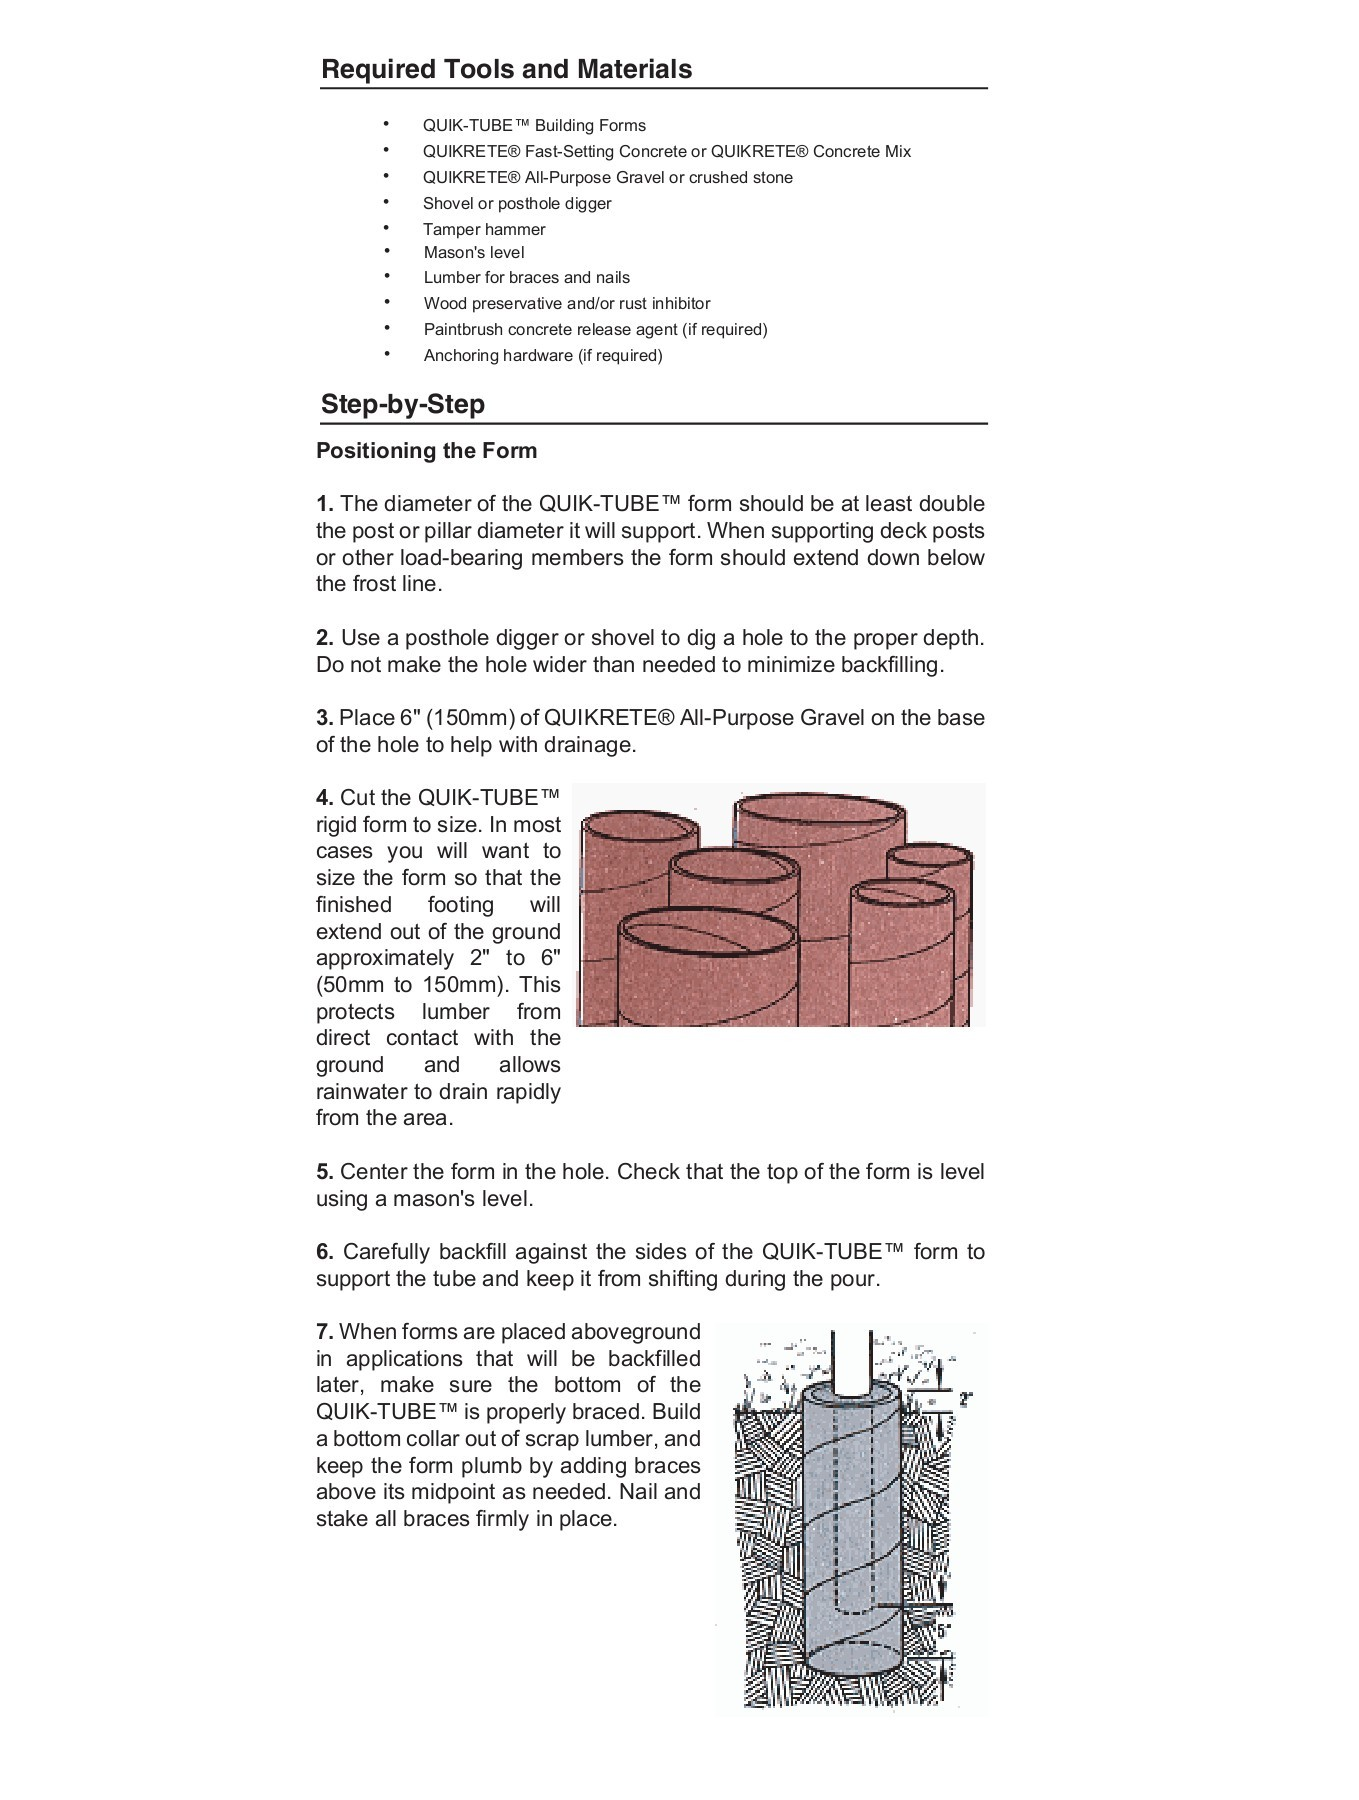 Concrete Tube Forms Project Quik Tube Pillar Foundations Quikrete Pages 1 4